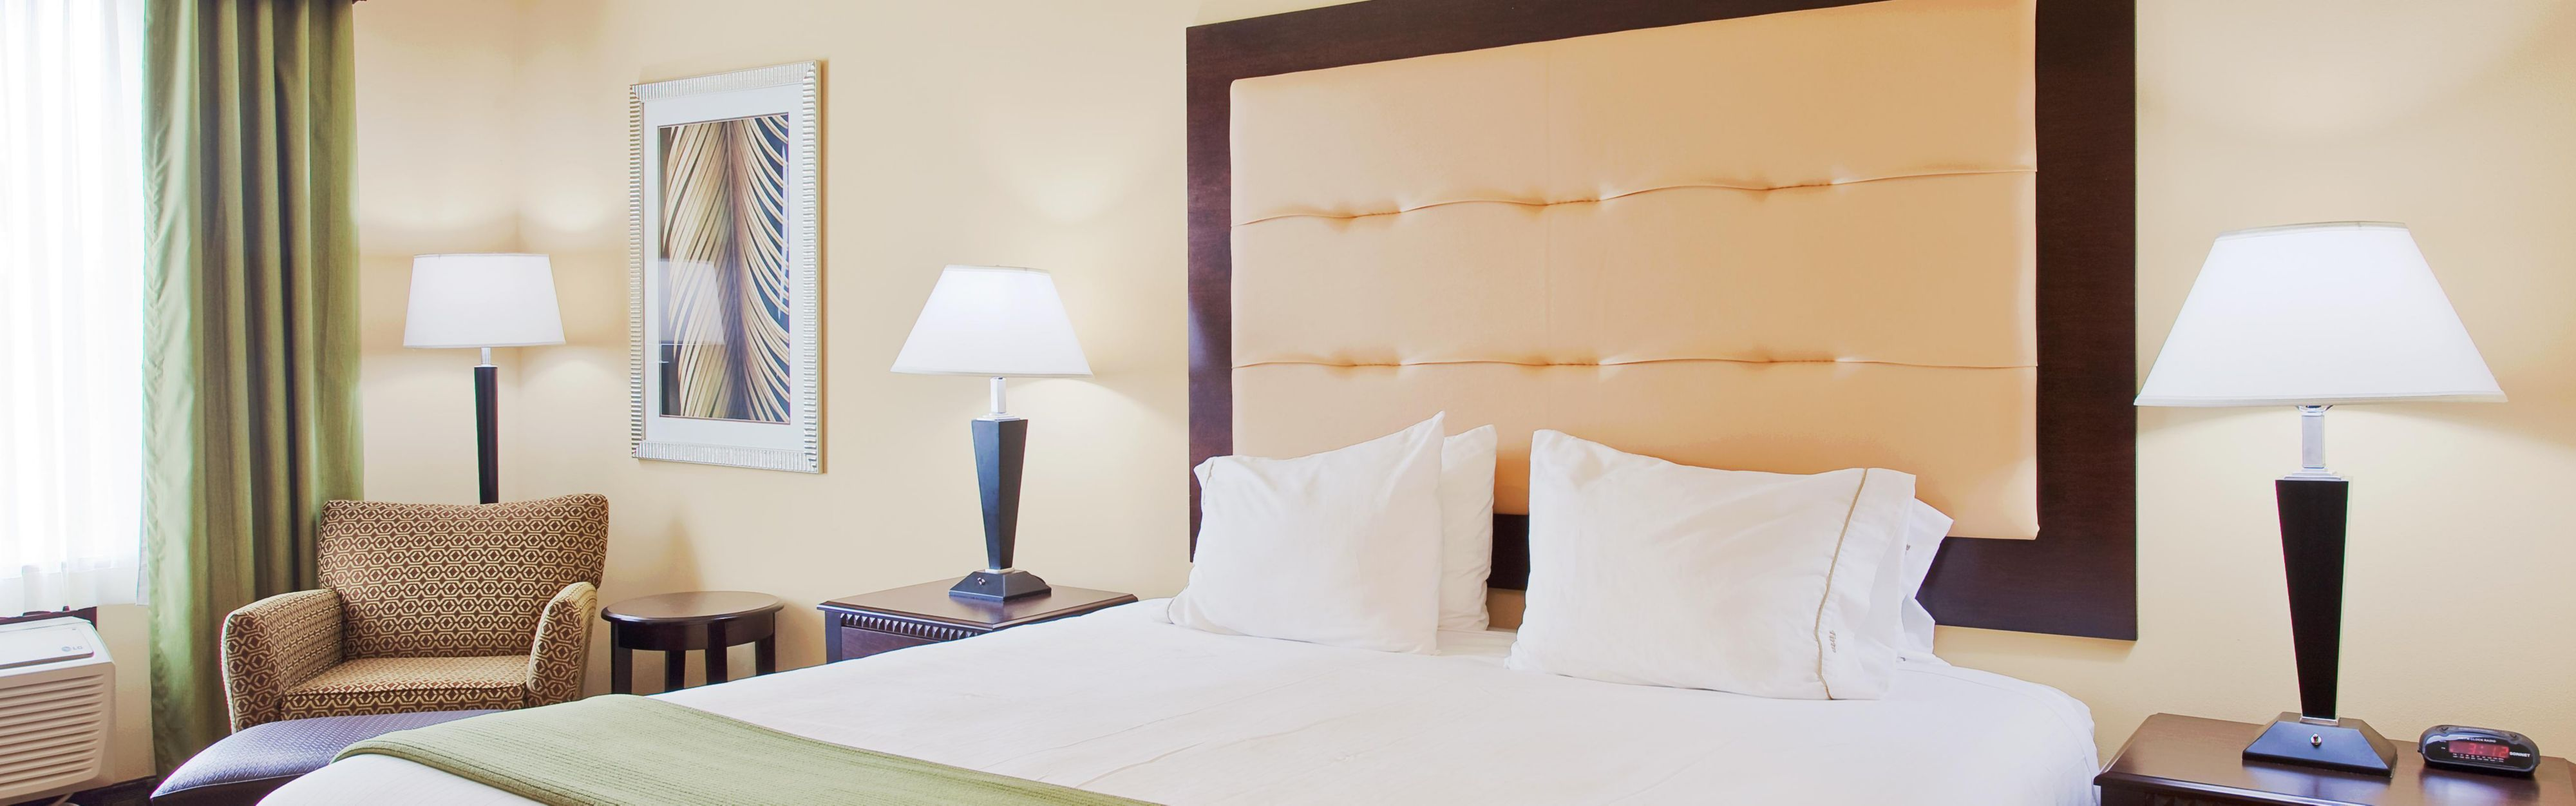 Holiday Inn Express & Suites Foley - N Gulf Shores image 1